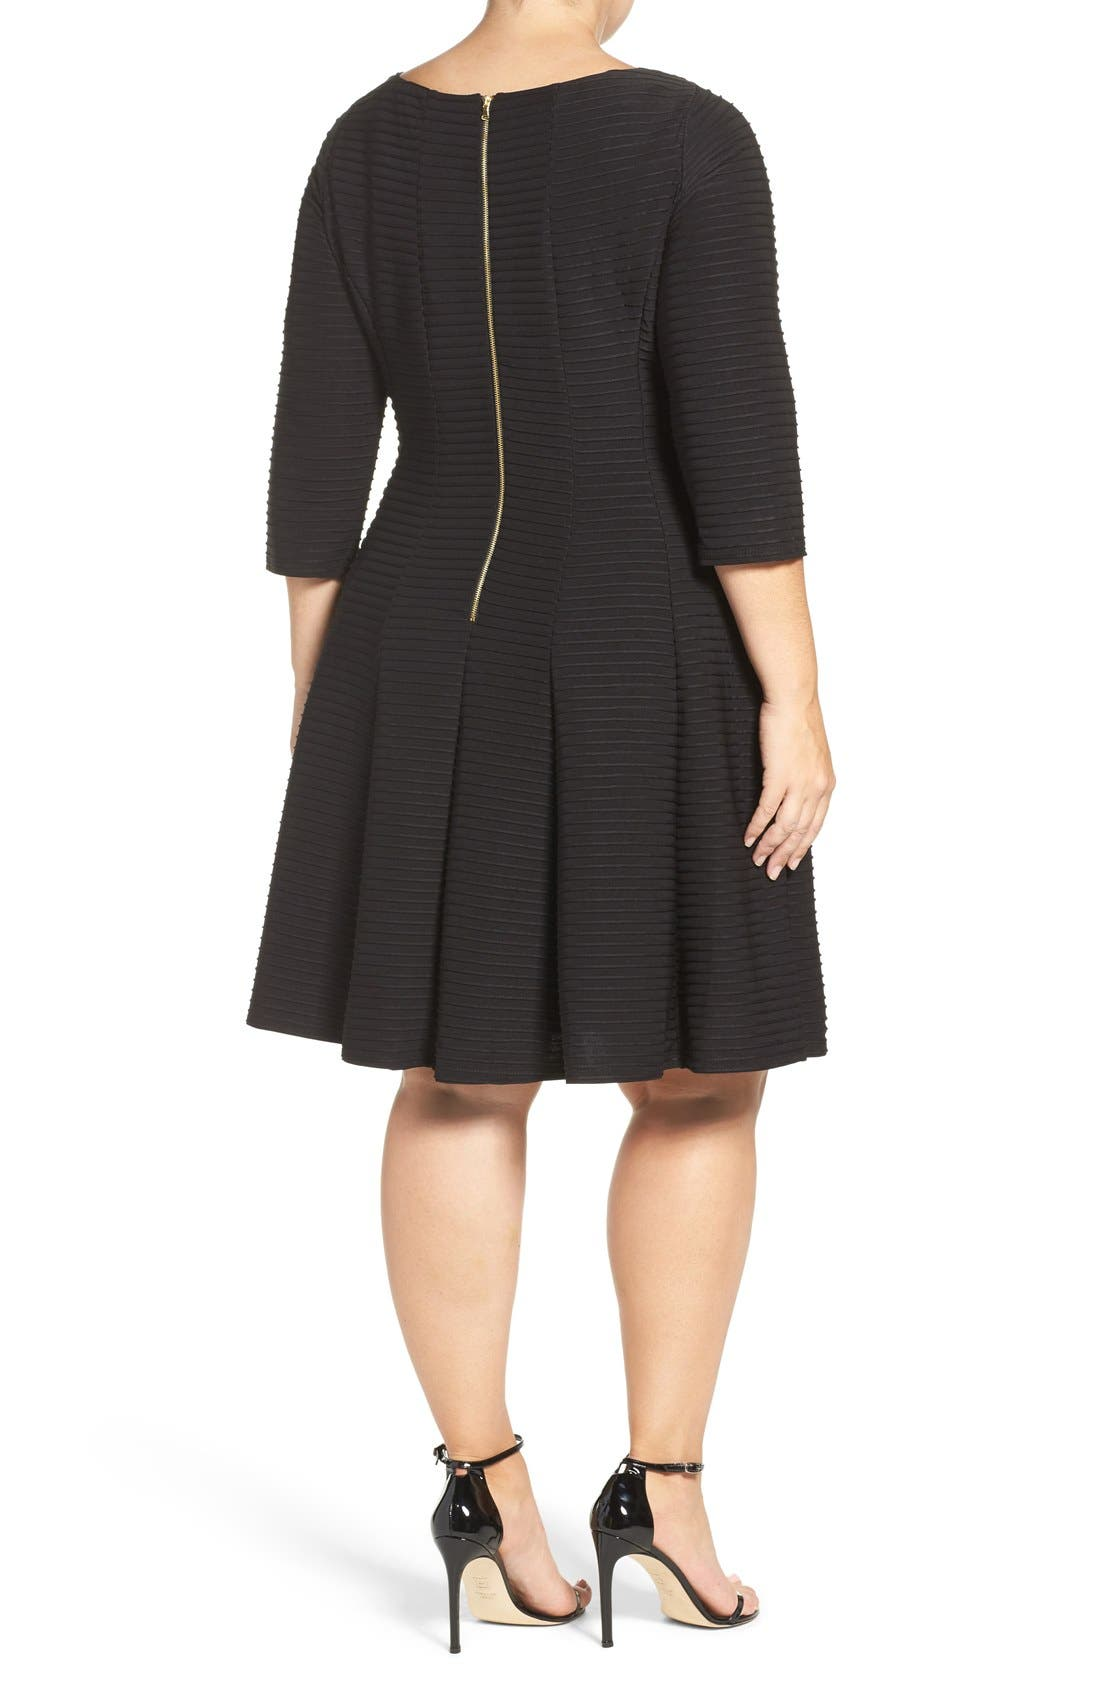 Alternate Image 2  - Gabby Skye Pintuck Knit Fit & Flare Dress (Plus Size)